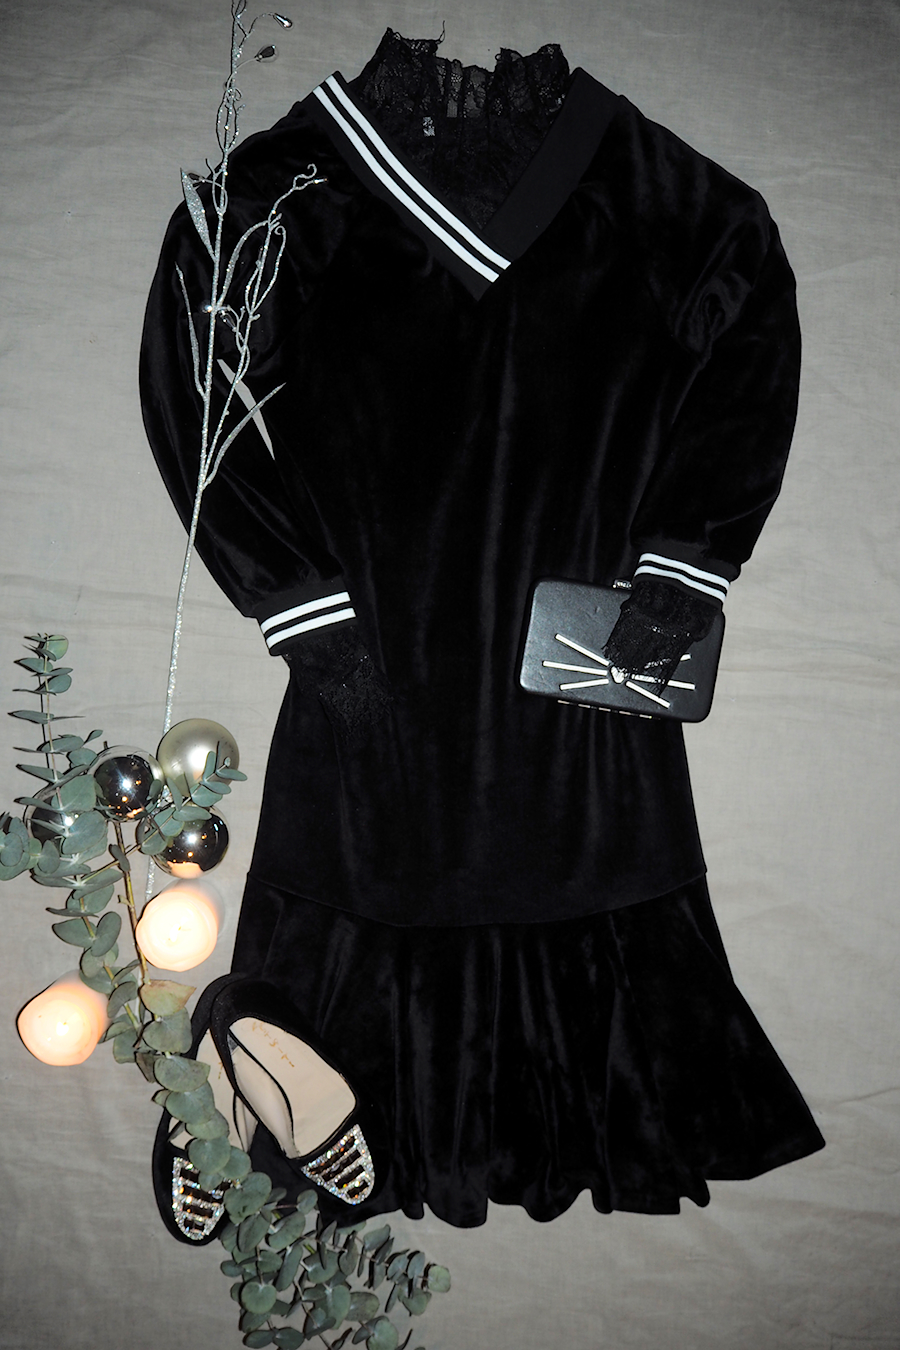 Just-take-a-look.berlin - Stylebook - Weihnachtsoutfit